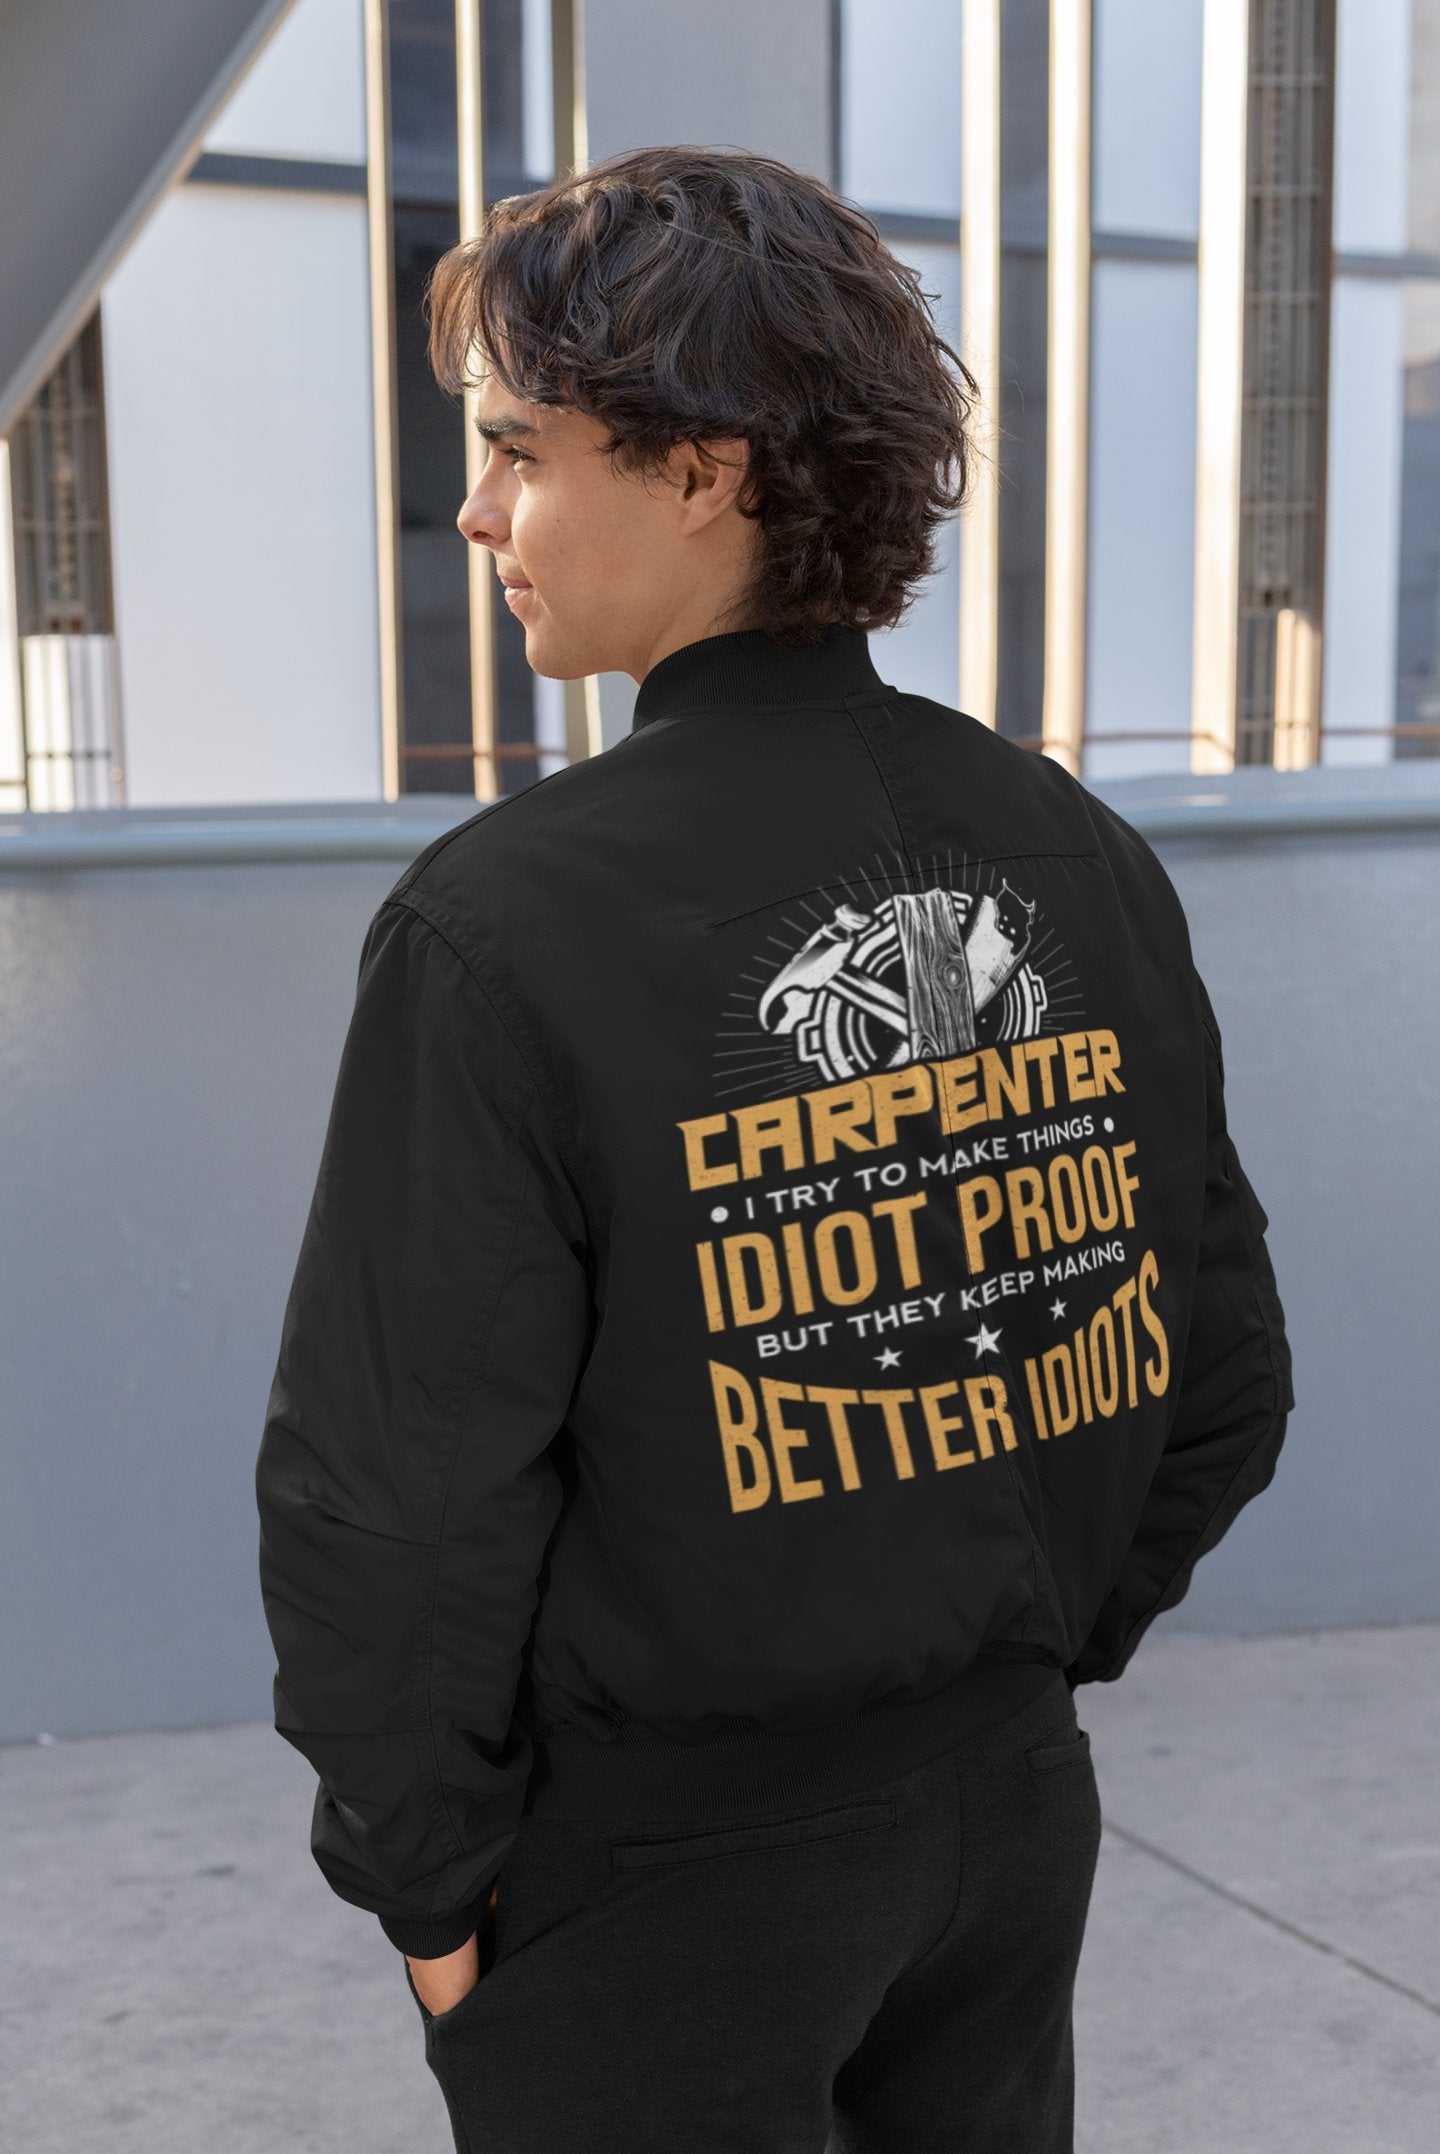 I Try To Make Things Idiot Proof Funny Carpenter Men's Bomber Jacket